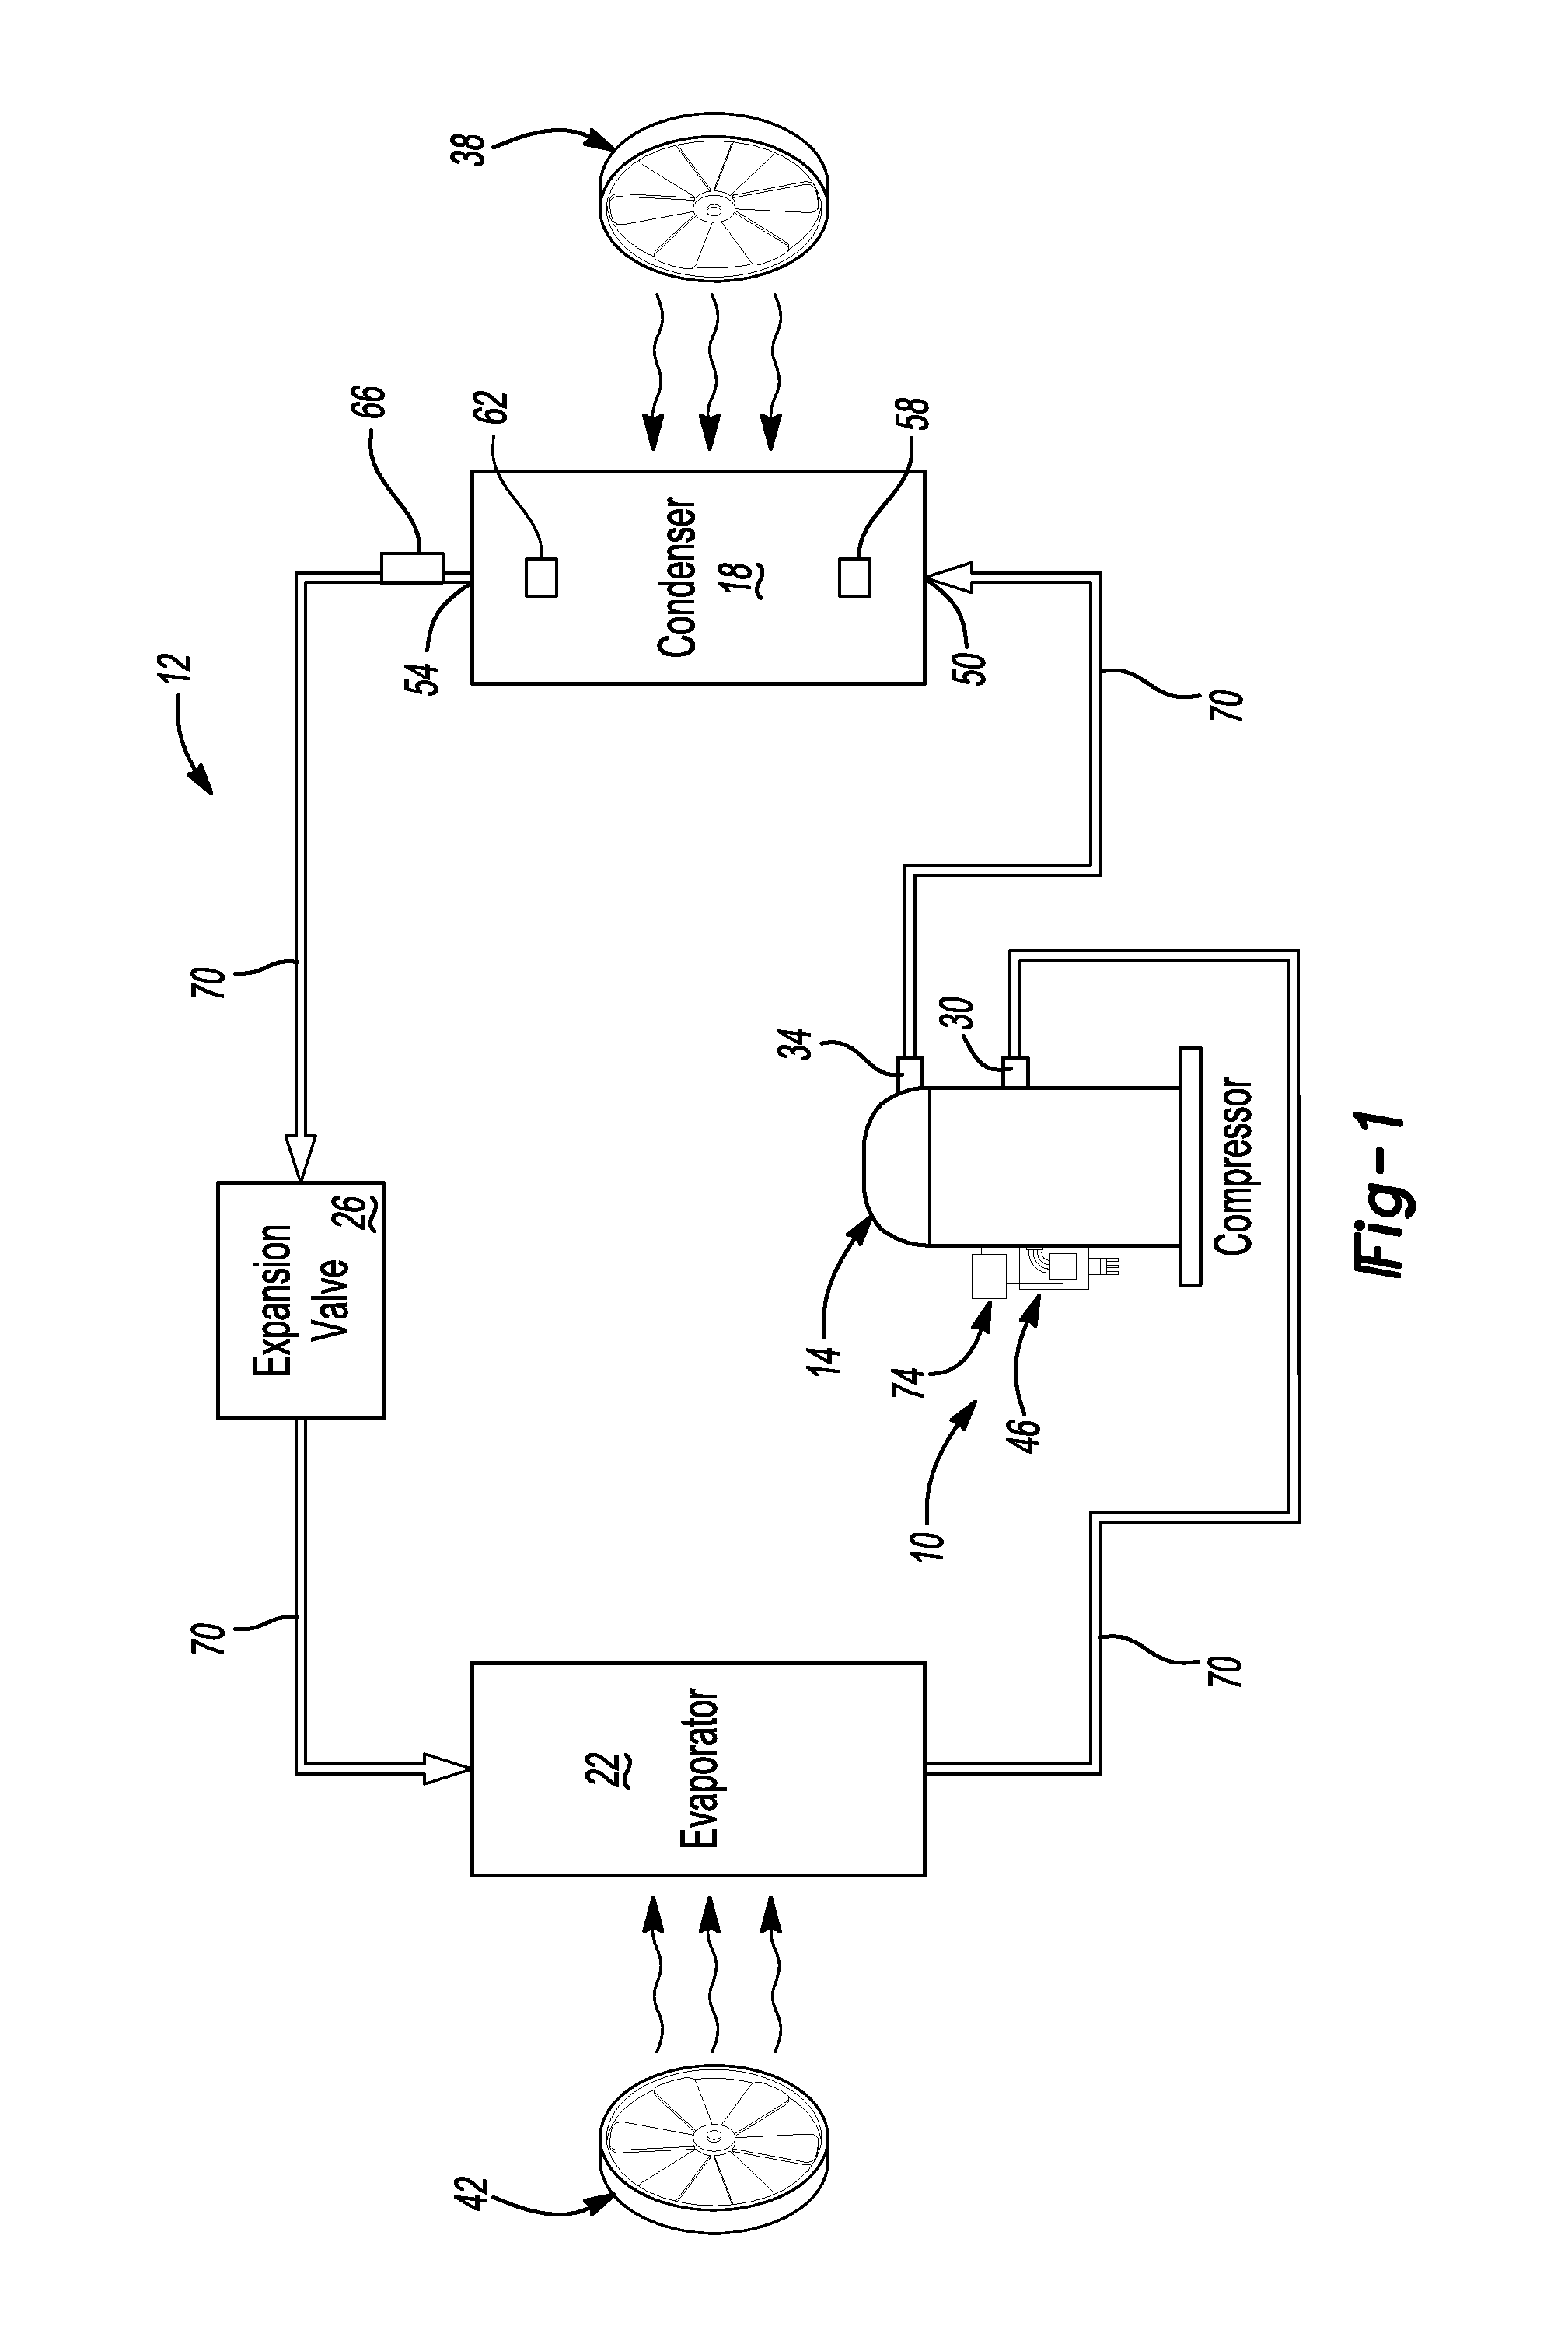 Patent Us 9803902 B2 Hybrid Circuit By Utc Fire Security Americas Corporation Inc Images